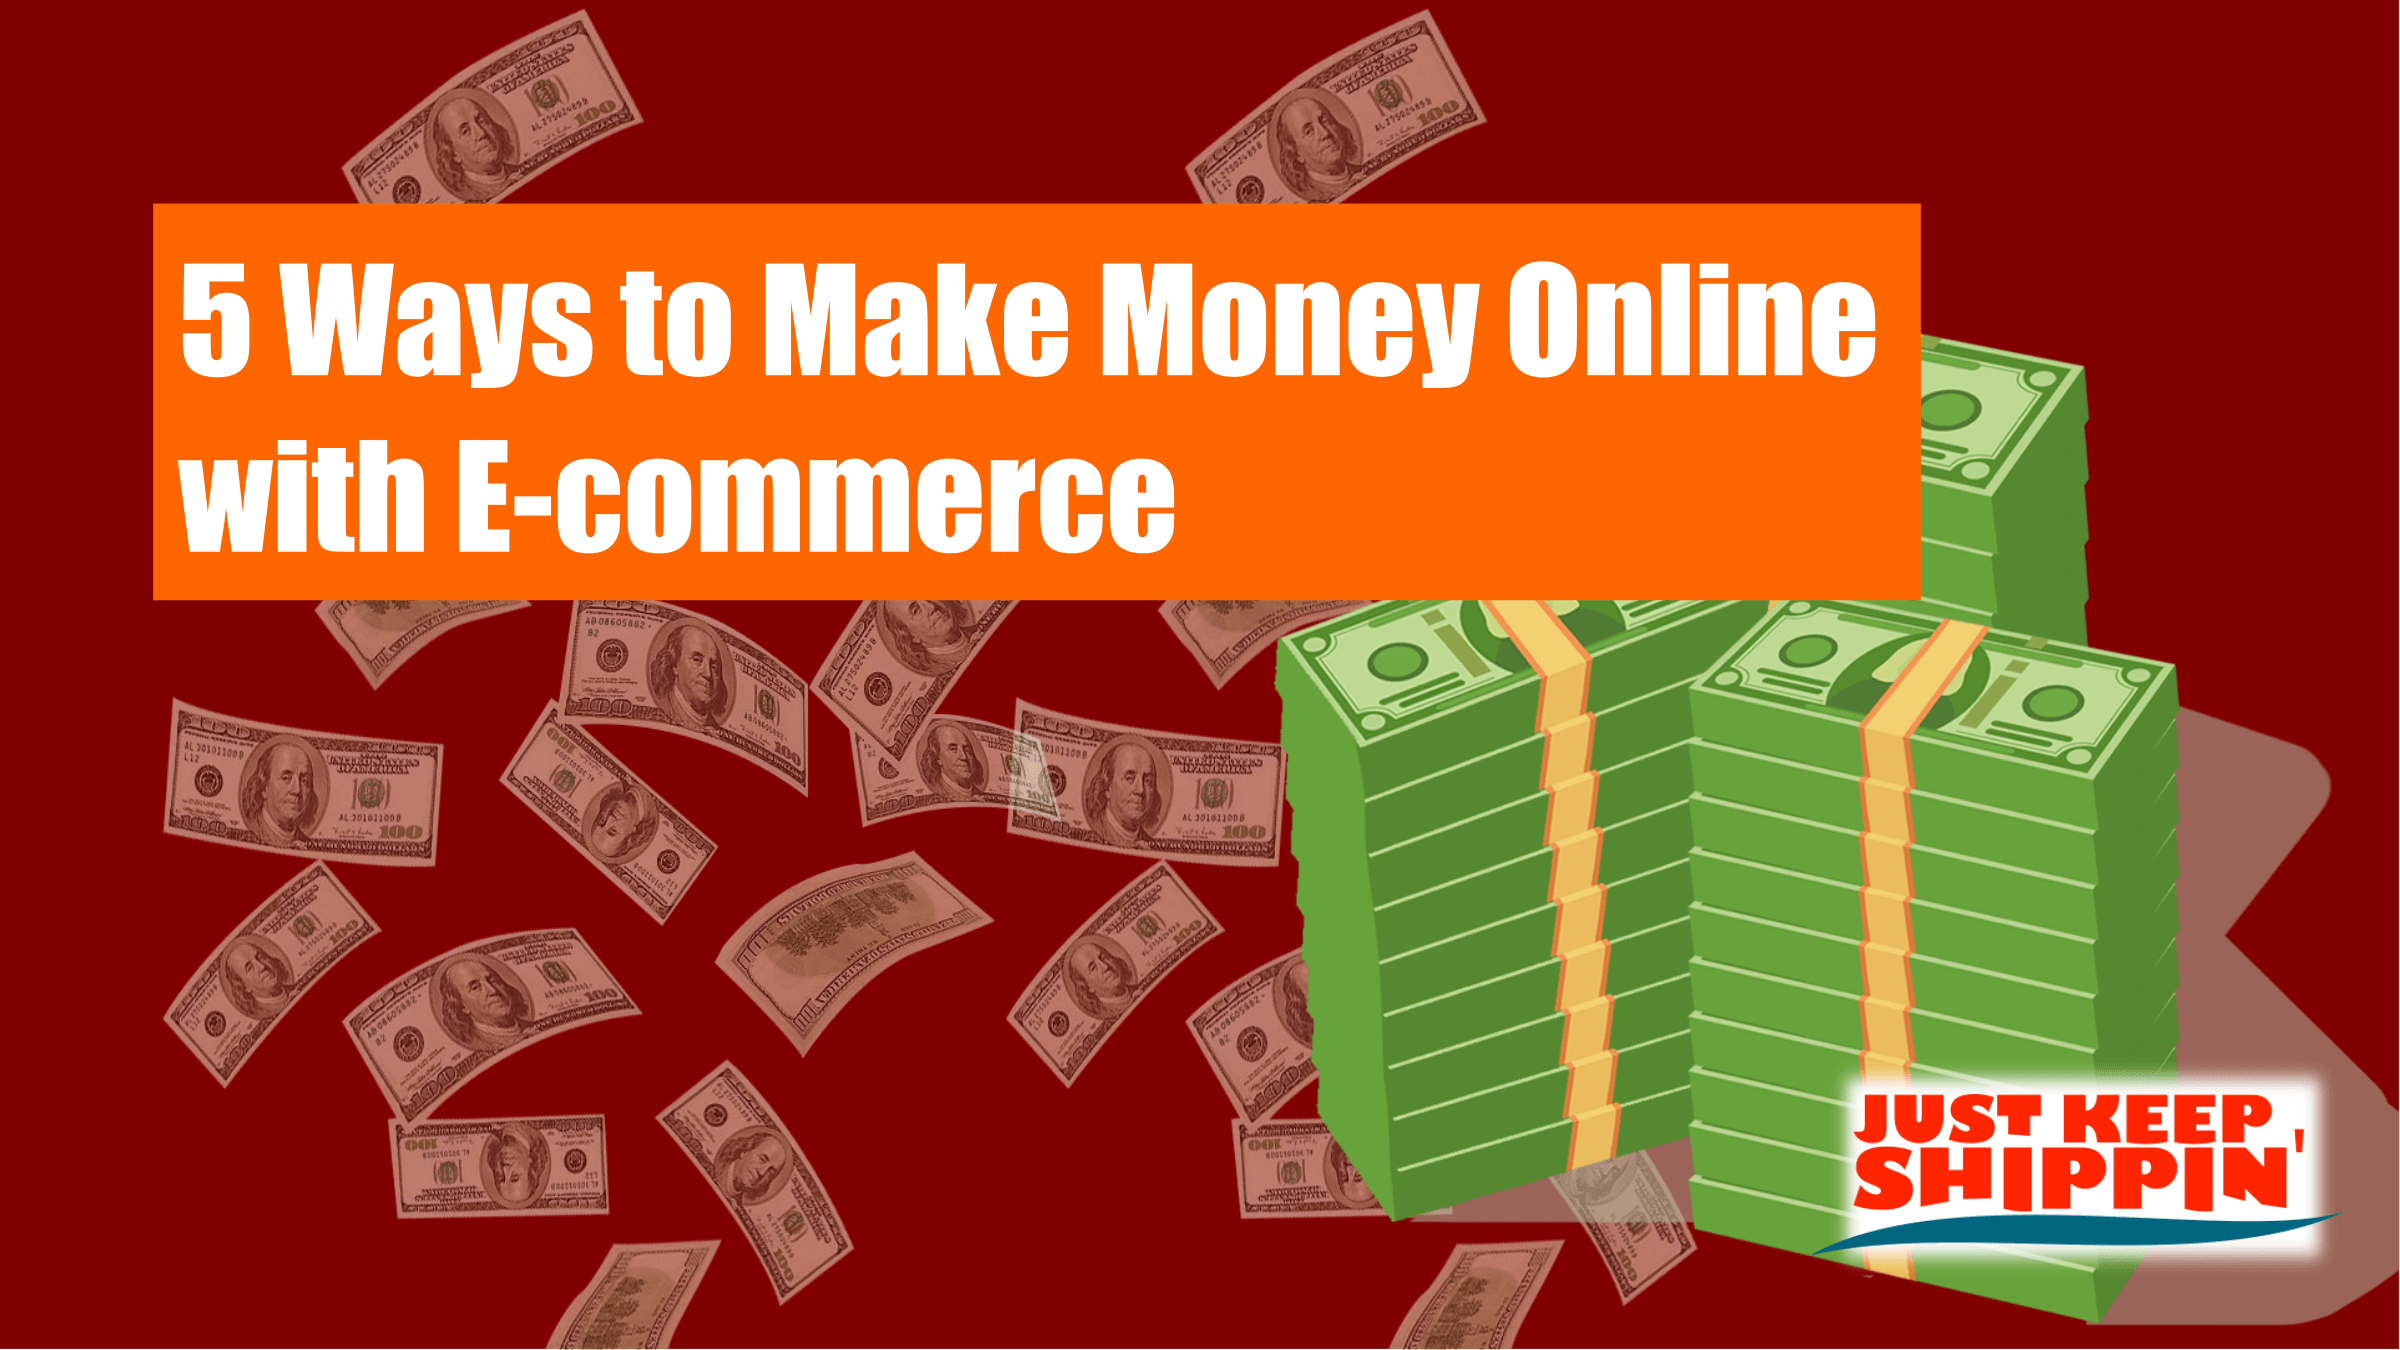 5 Ways to Make Money Online With Ecommerce